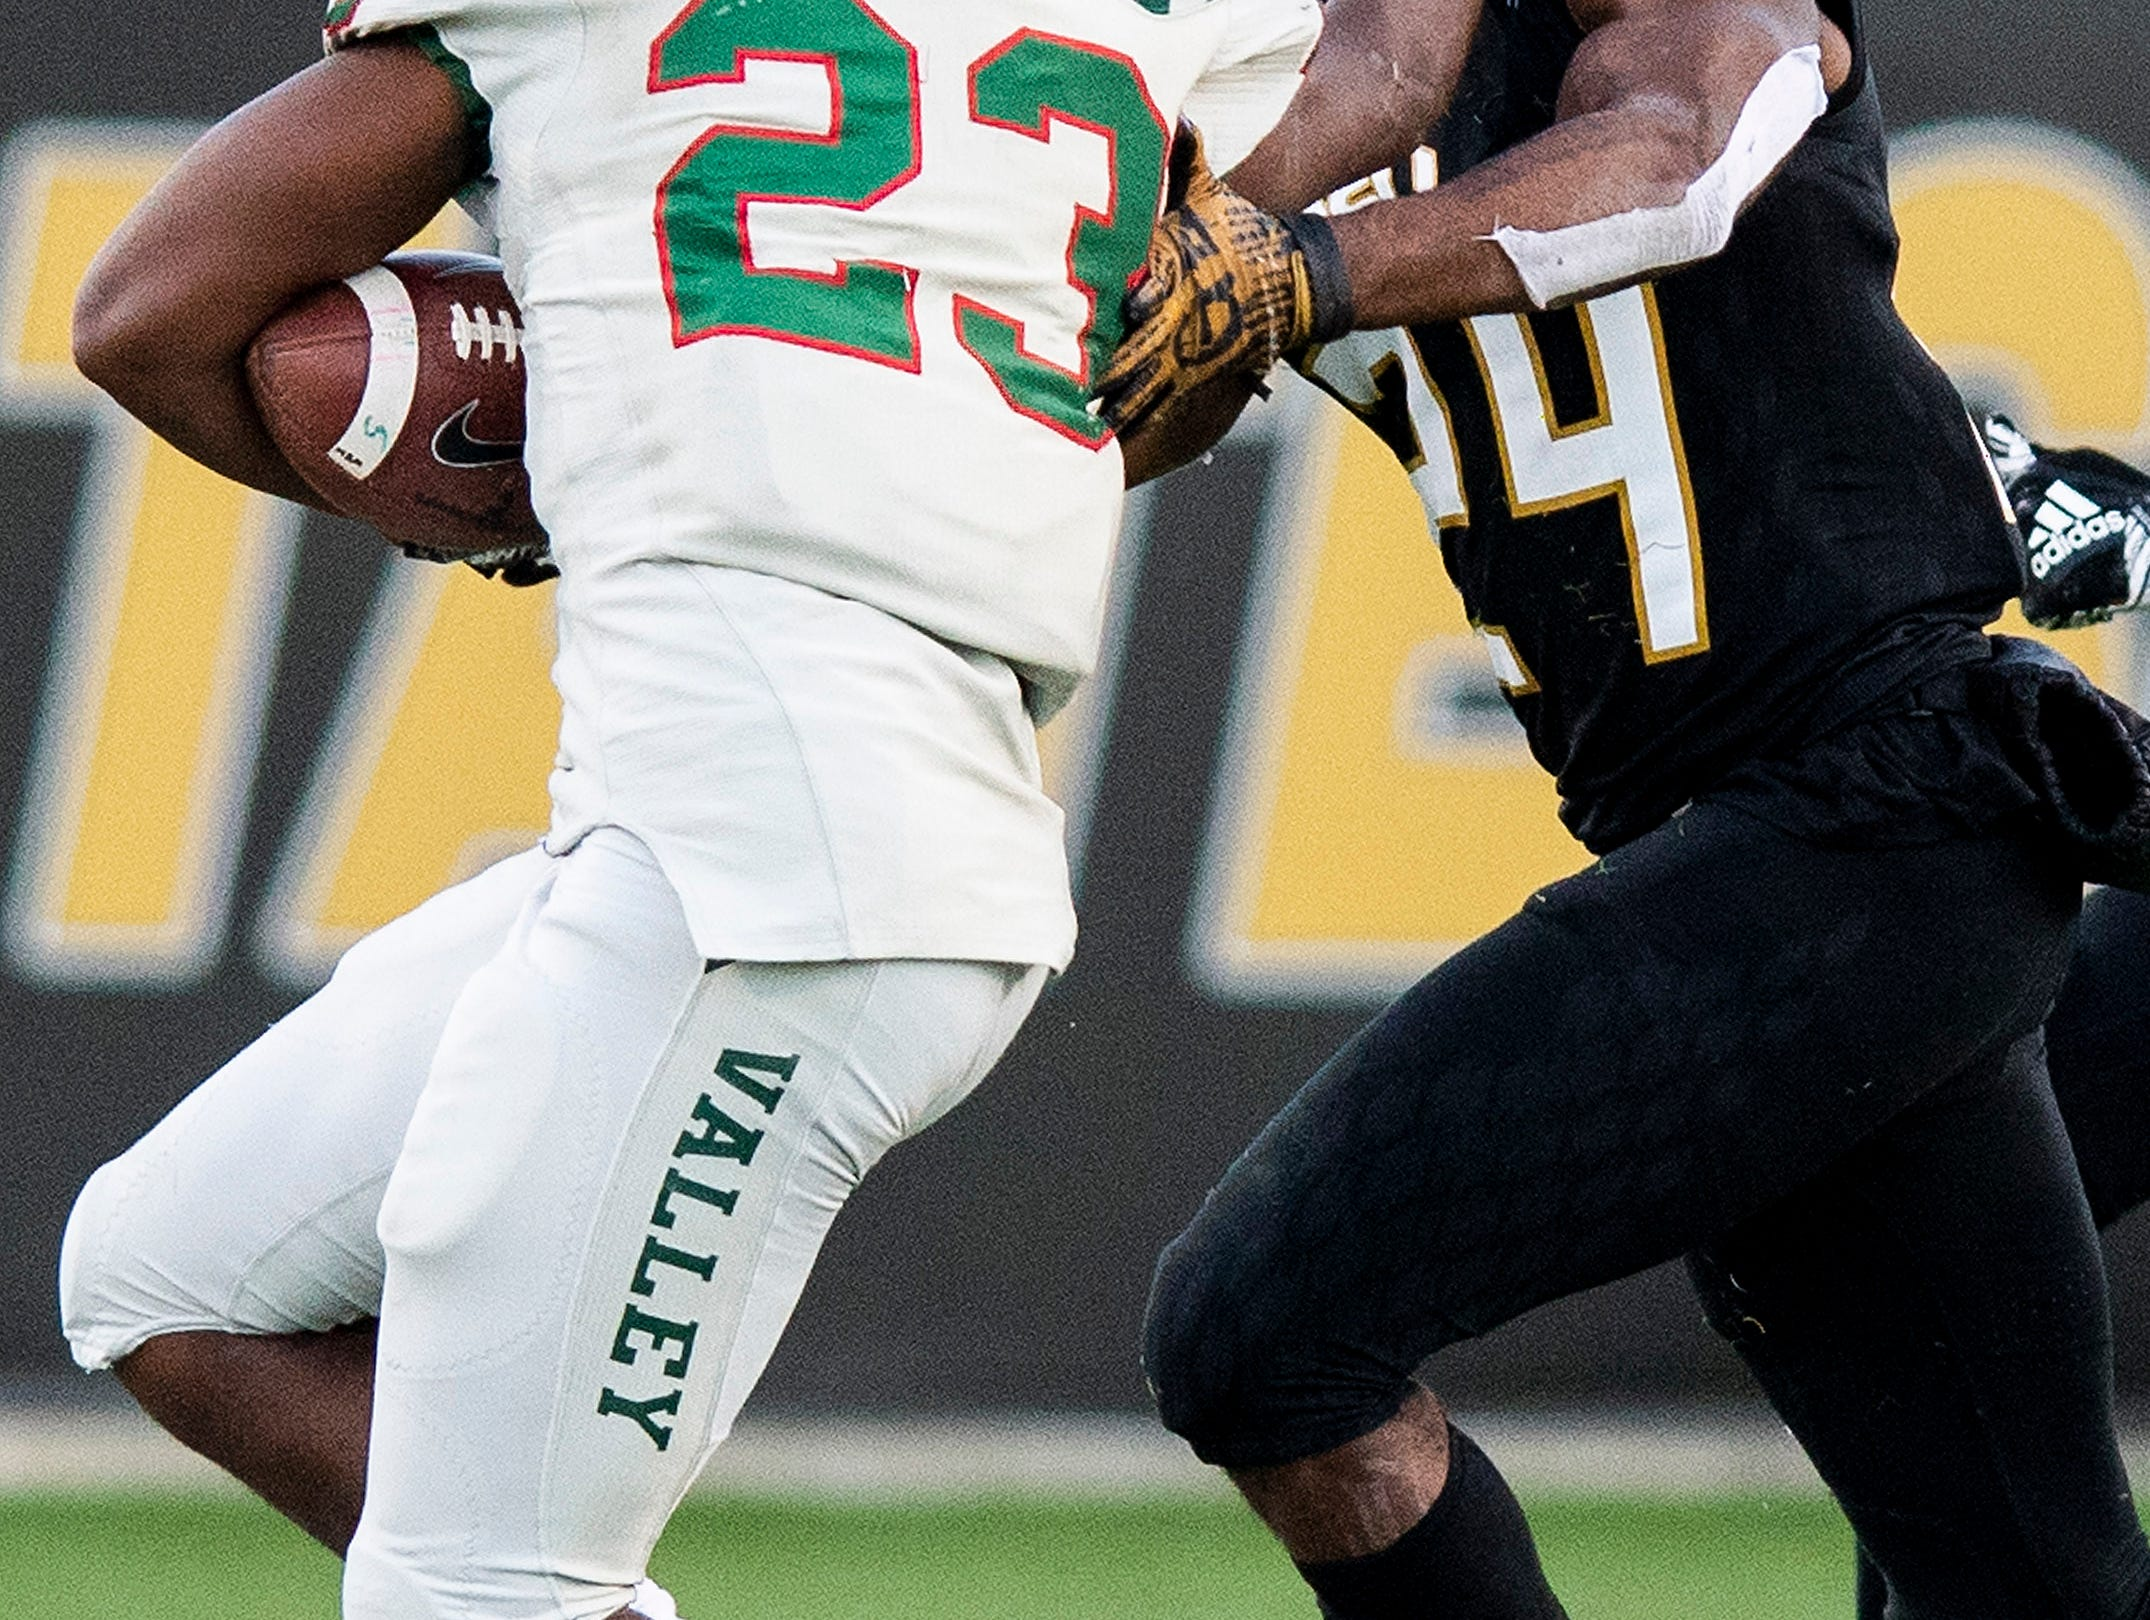 Mississippi Valley State running back John Derrick Smith (23)  stiff arms Alabama State University defensive back Joshua Hill (24) in the Turkey Day Classic at Hornet Stadium on the ASU campus in Montgomery, Ala., on Thanksgiving Day, Thursday November 22, 2018.